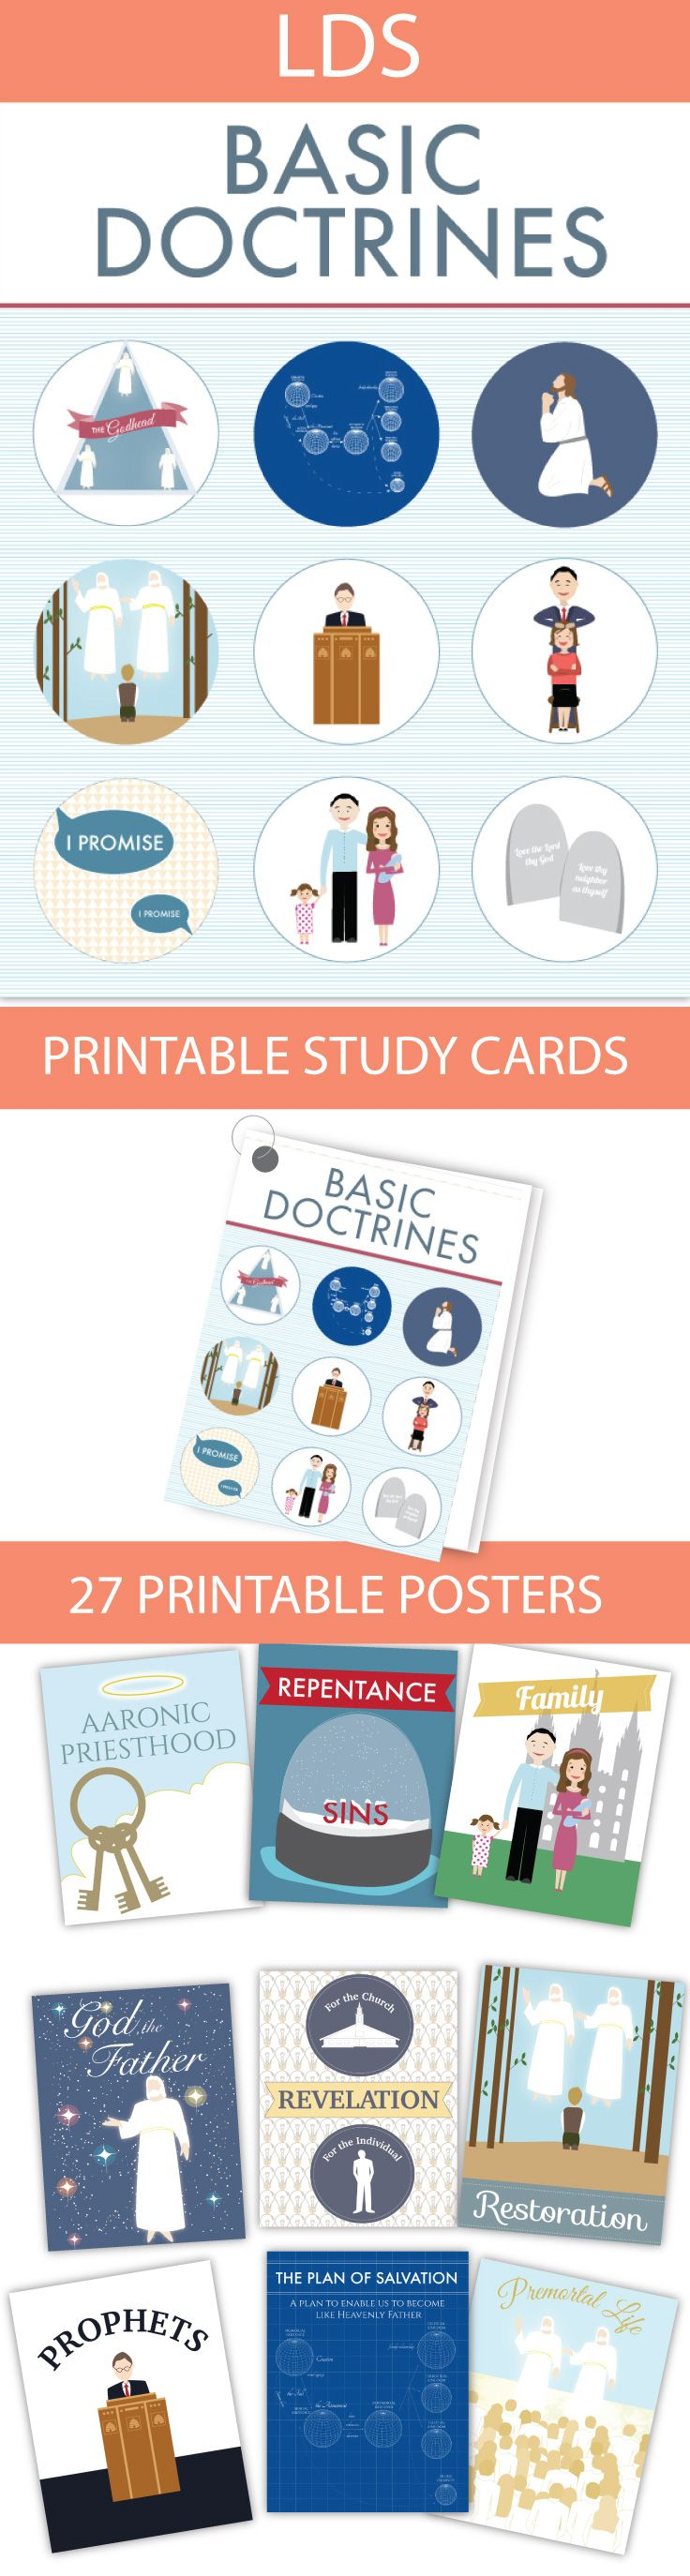 These are really great for seminary or family study! Tons of ideas ...